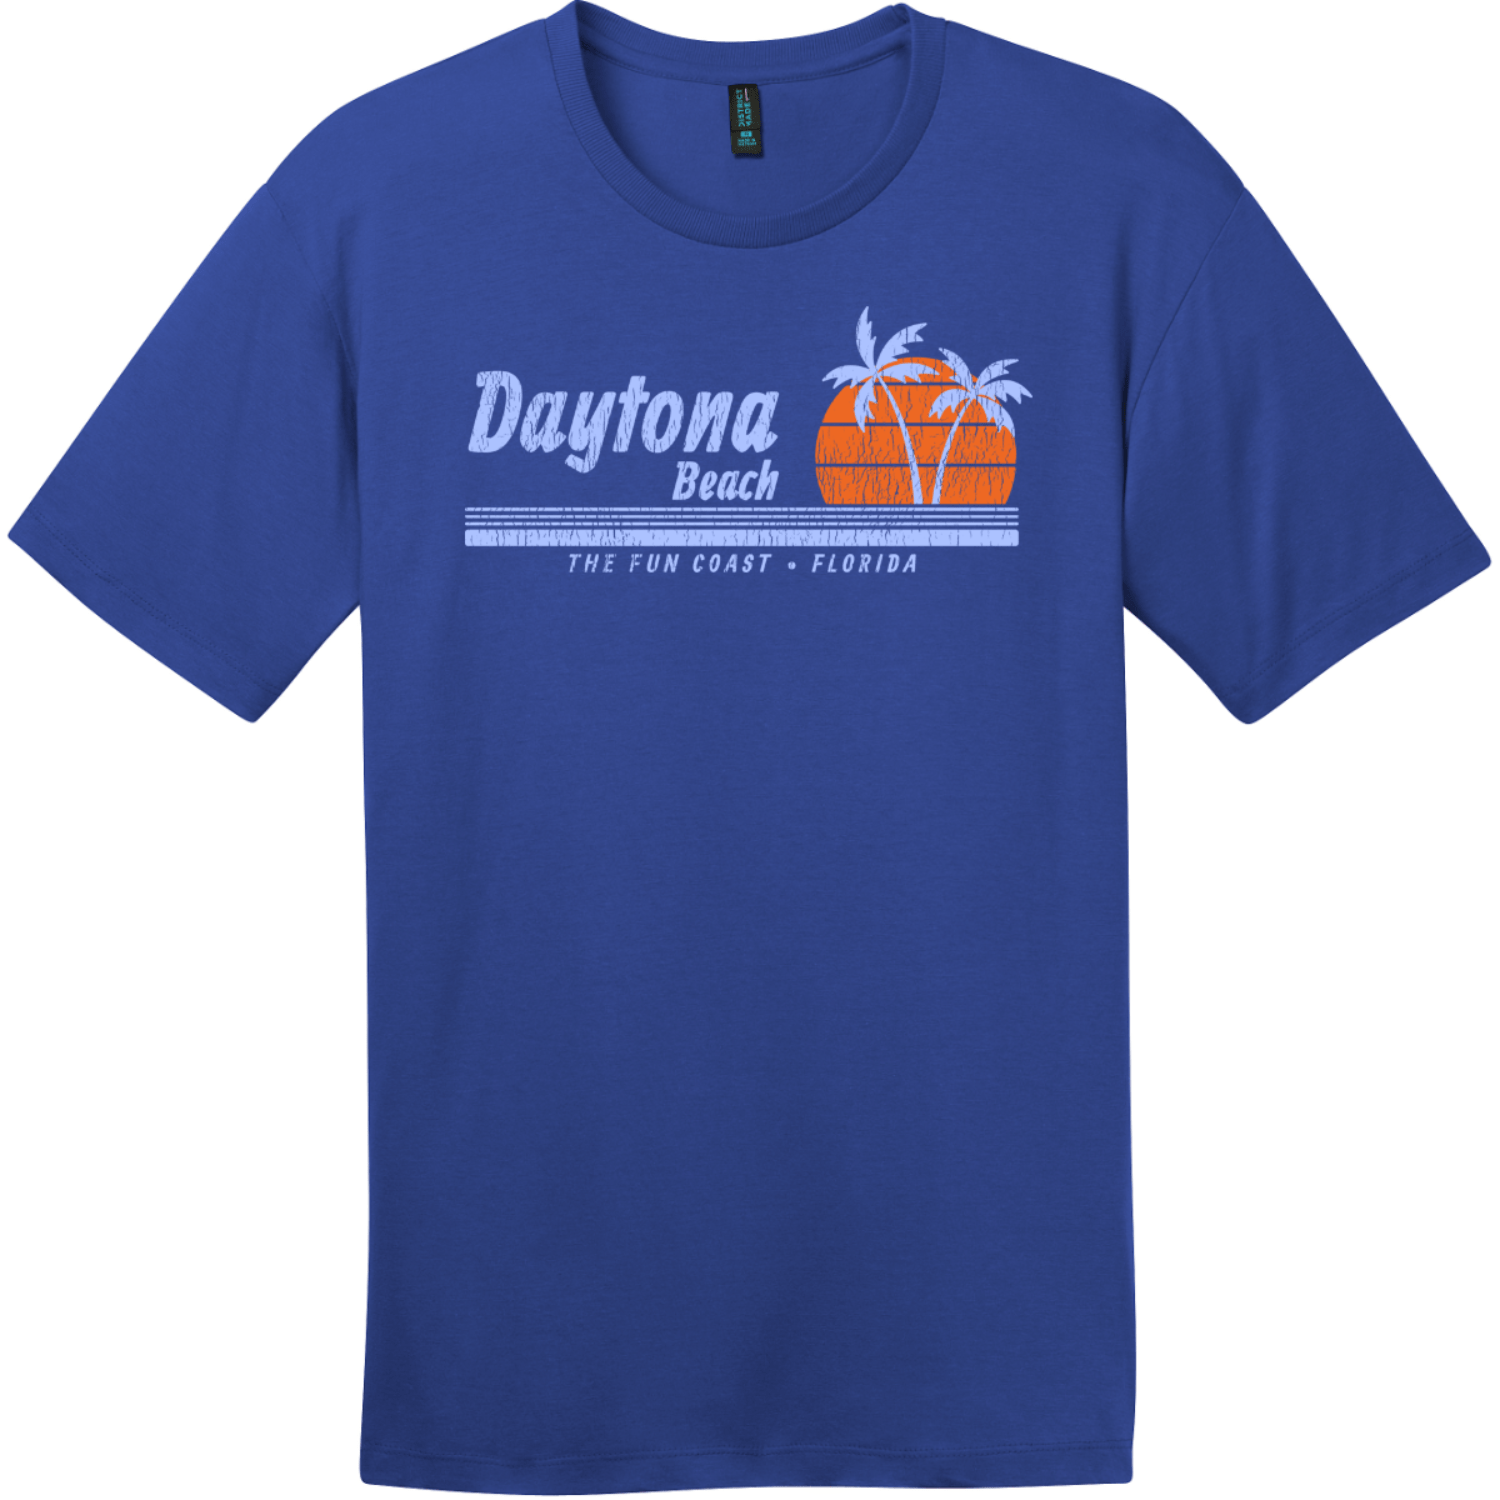 Daytona Beach Florida Fun Coast T-Shirt Deep Royal District Perfect Weight Tee DT104